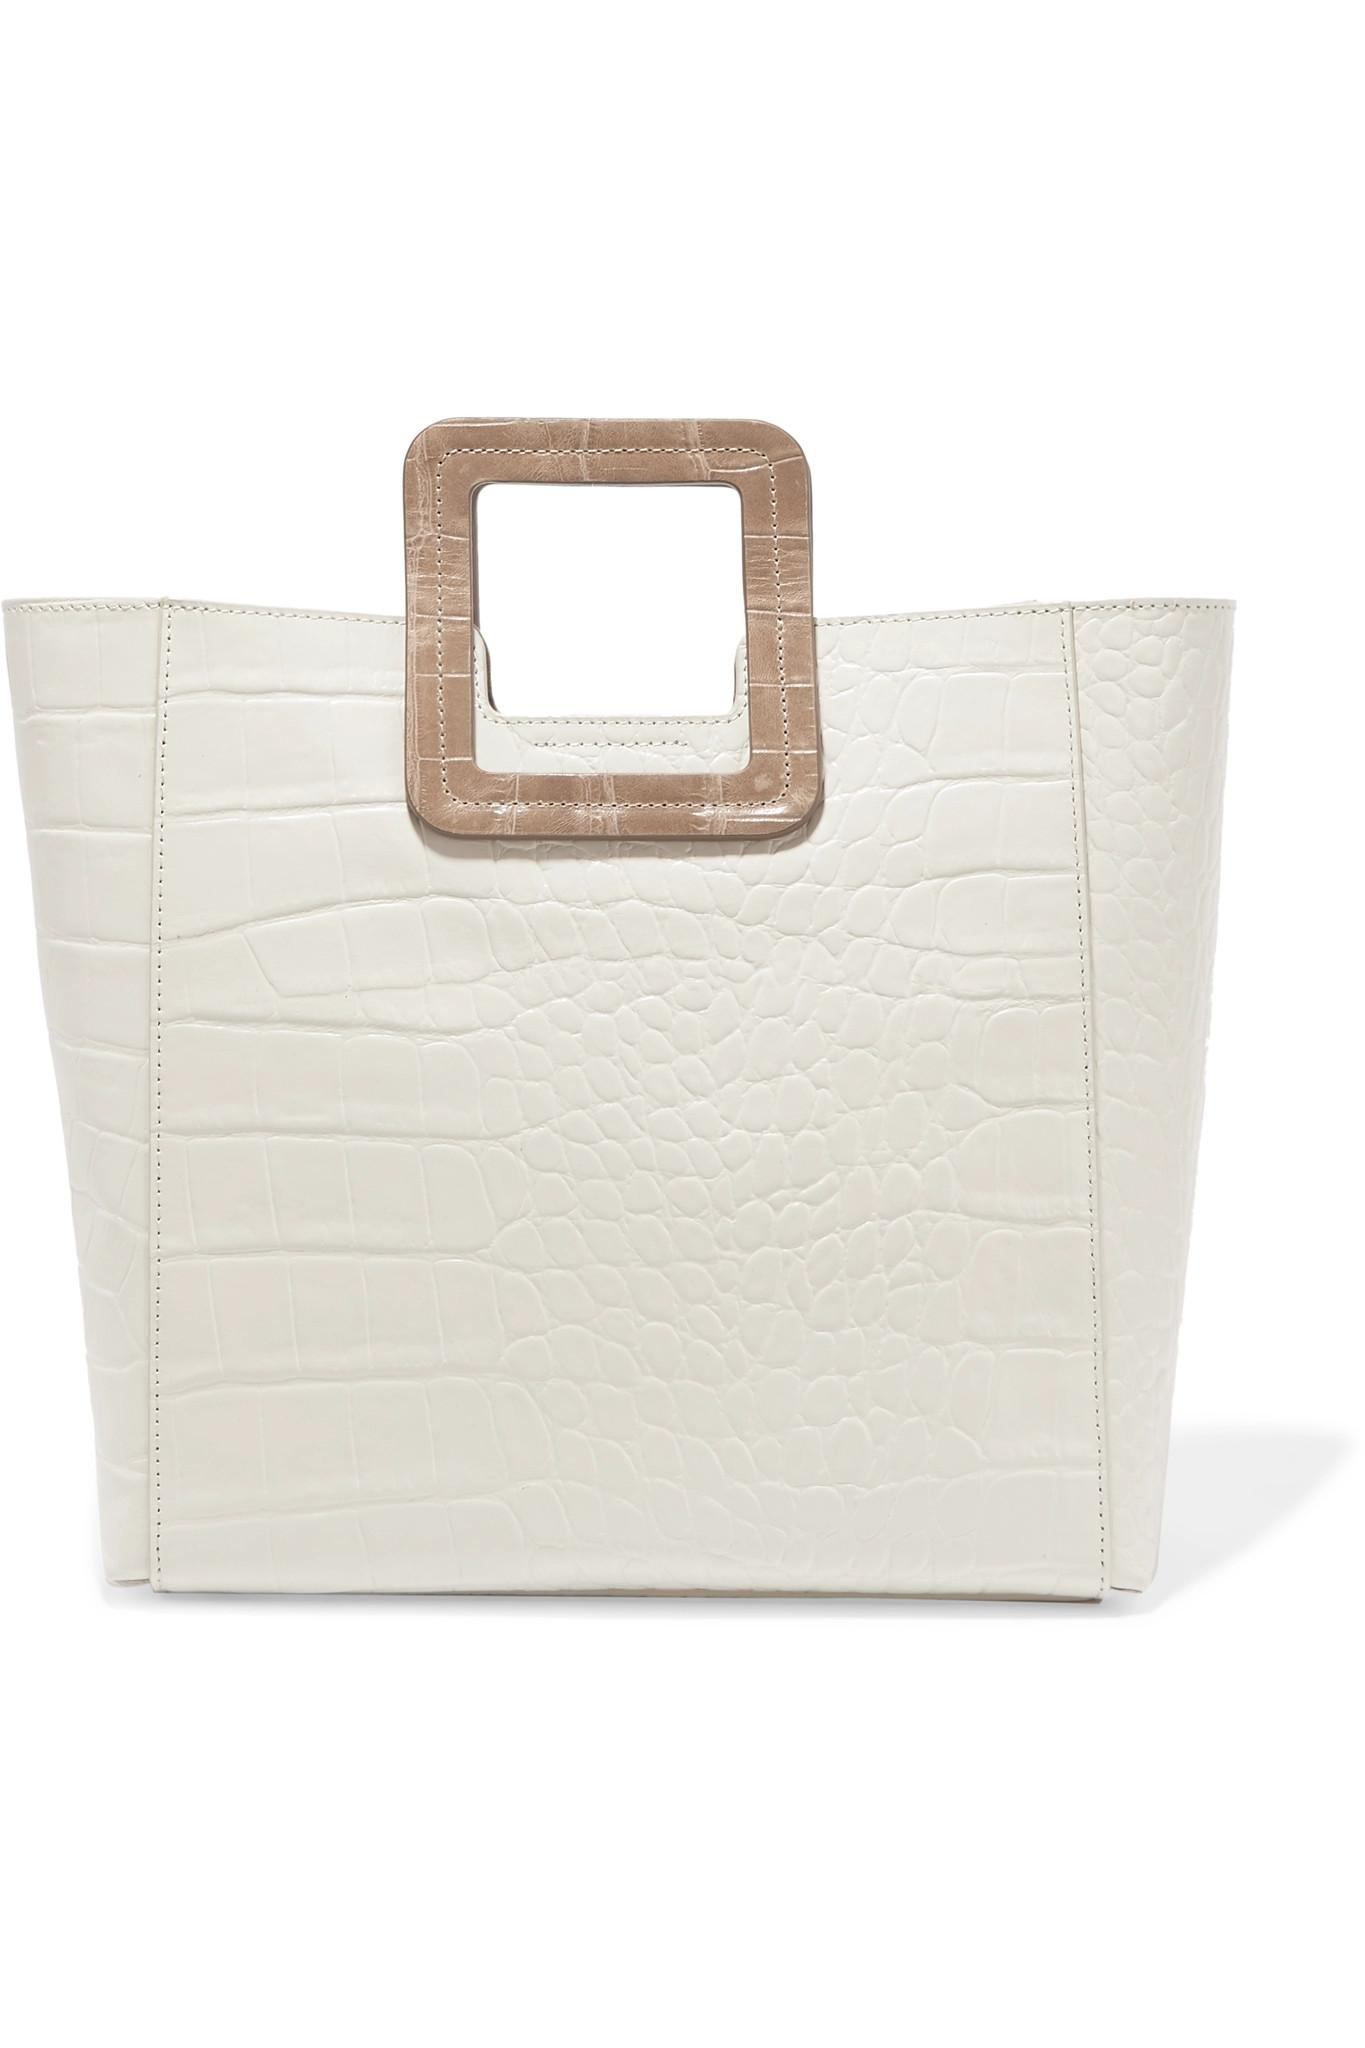 b57dd400ca STAUD Shirley Two-tone Croc-effect Leather Tote in Natural - Lyst